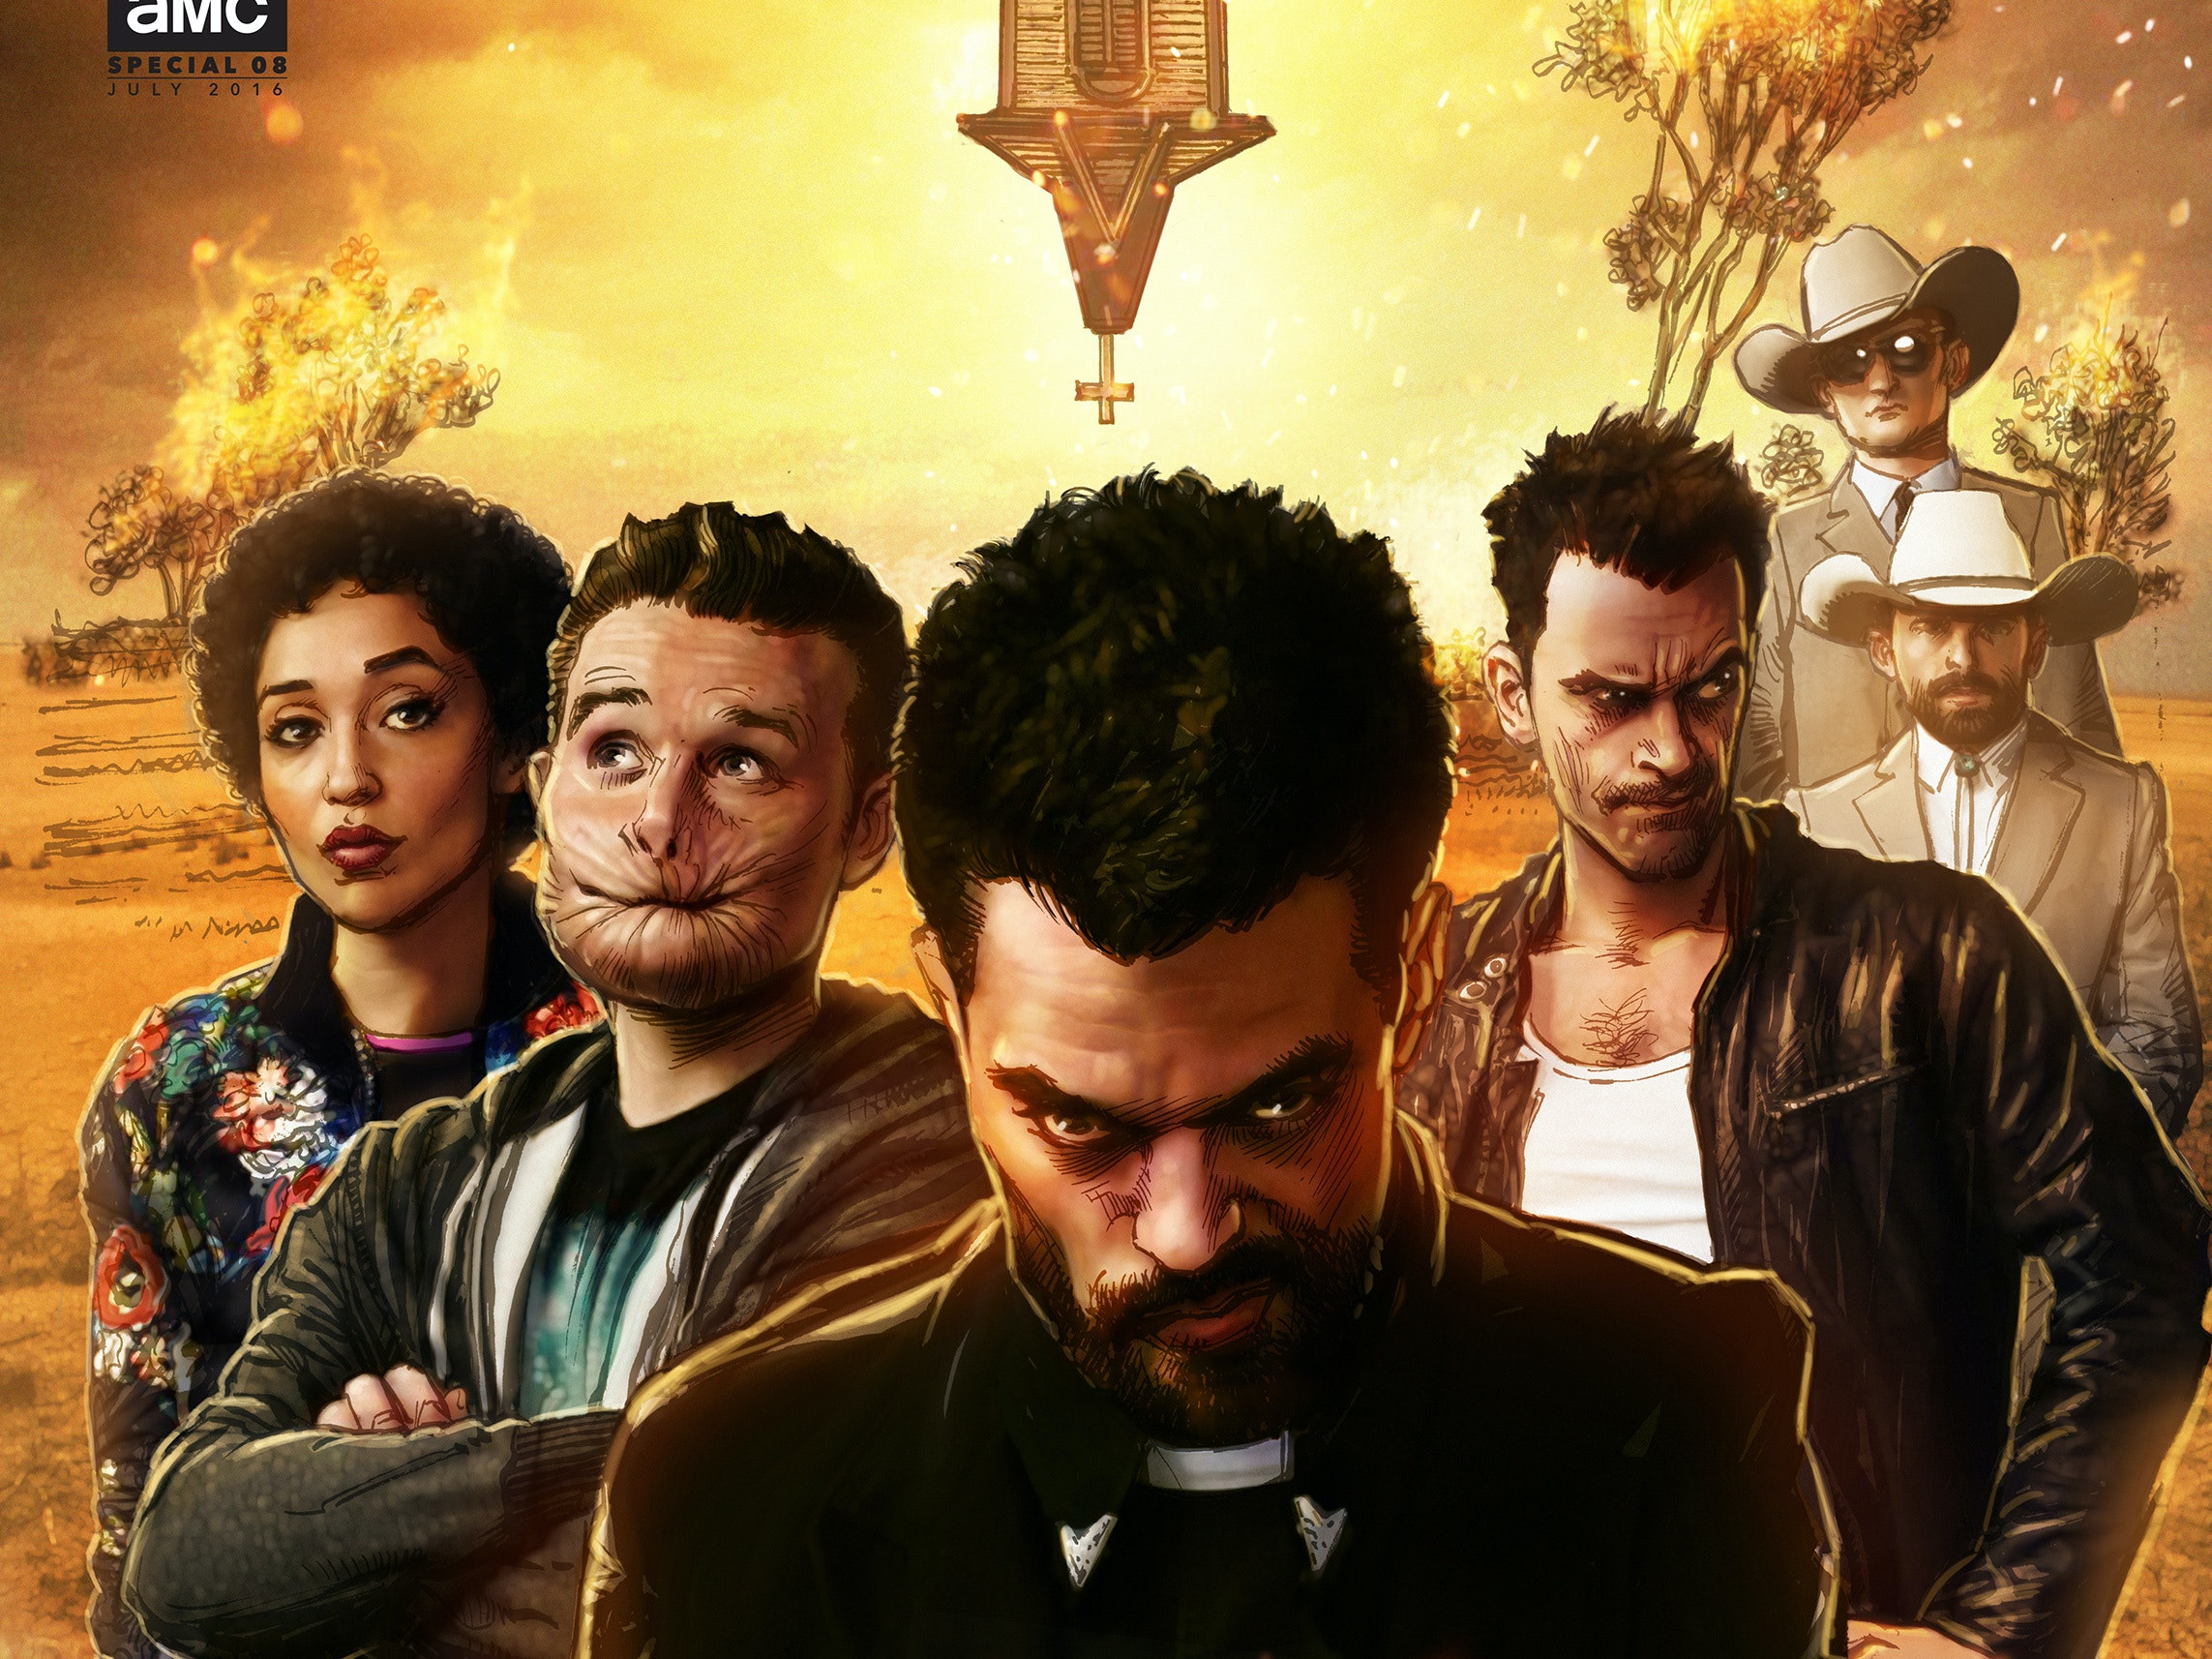 5 Loose Ends We Need Tied Up in AMC's 'Preacher' Finale